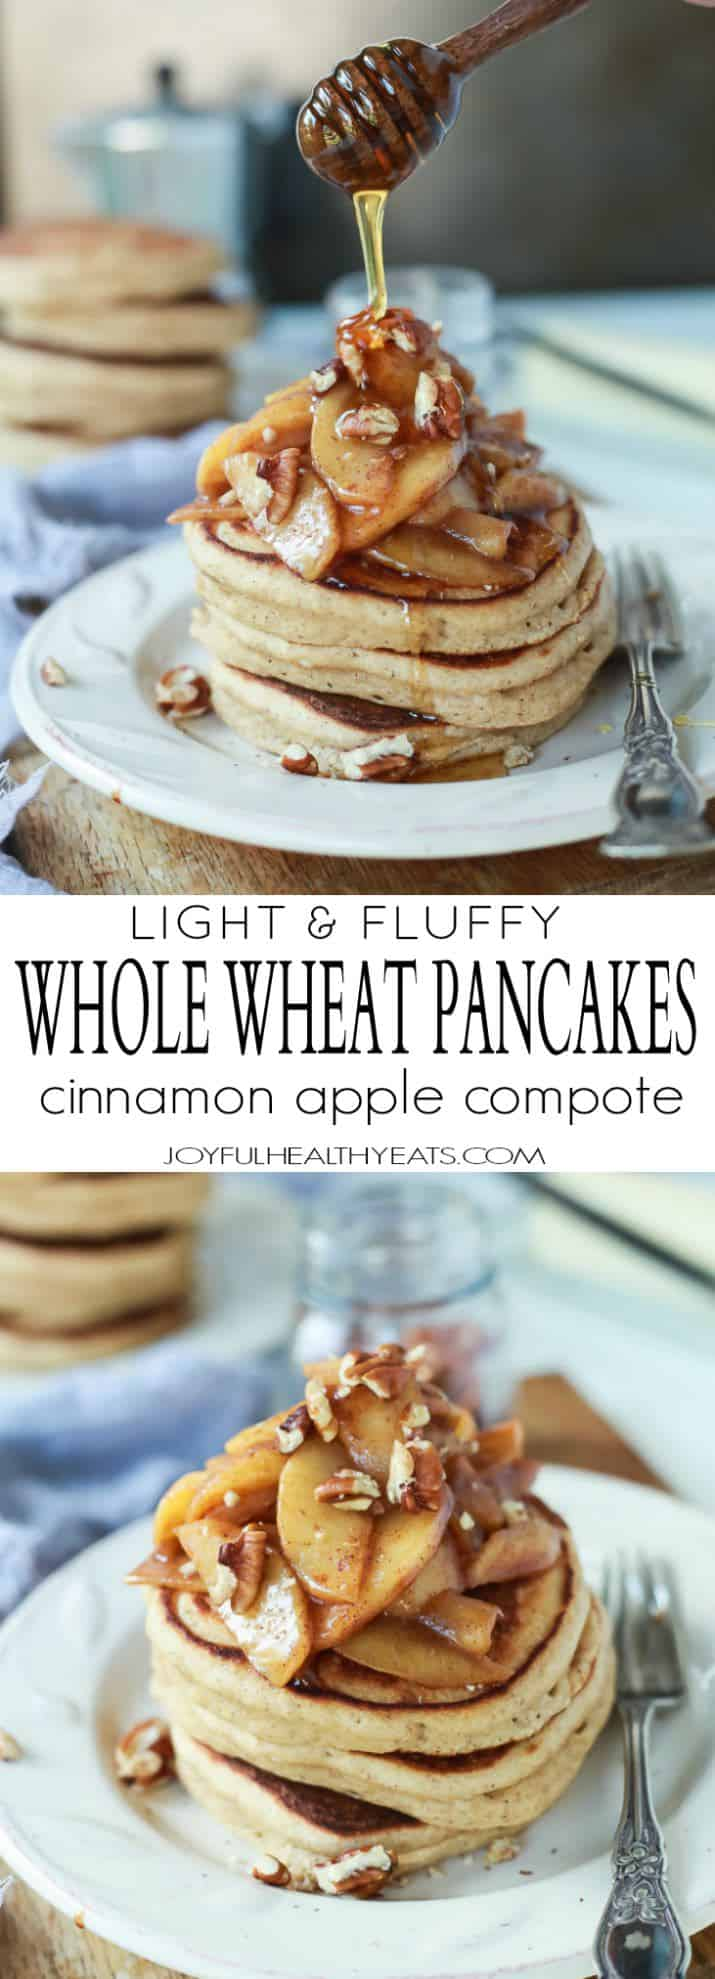 Recipe collage for Light & Fluffy Whole Wheat Pancakes with Cinnamon Apple compote